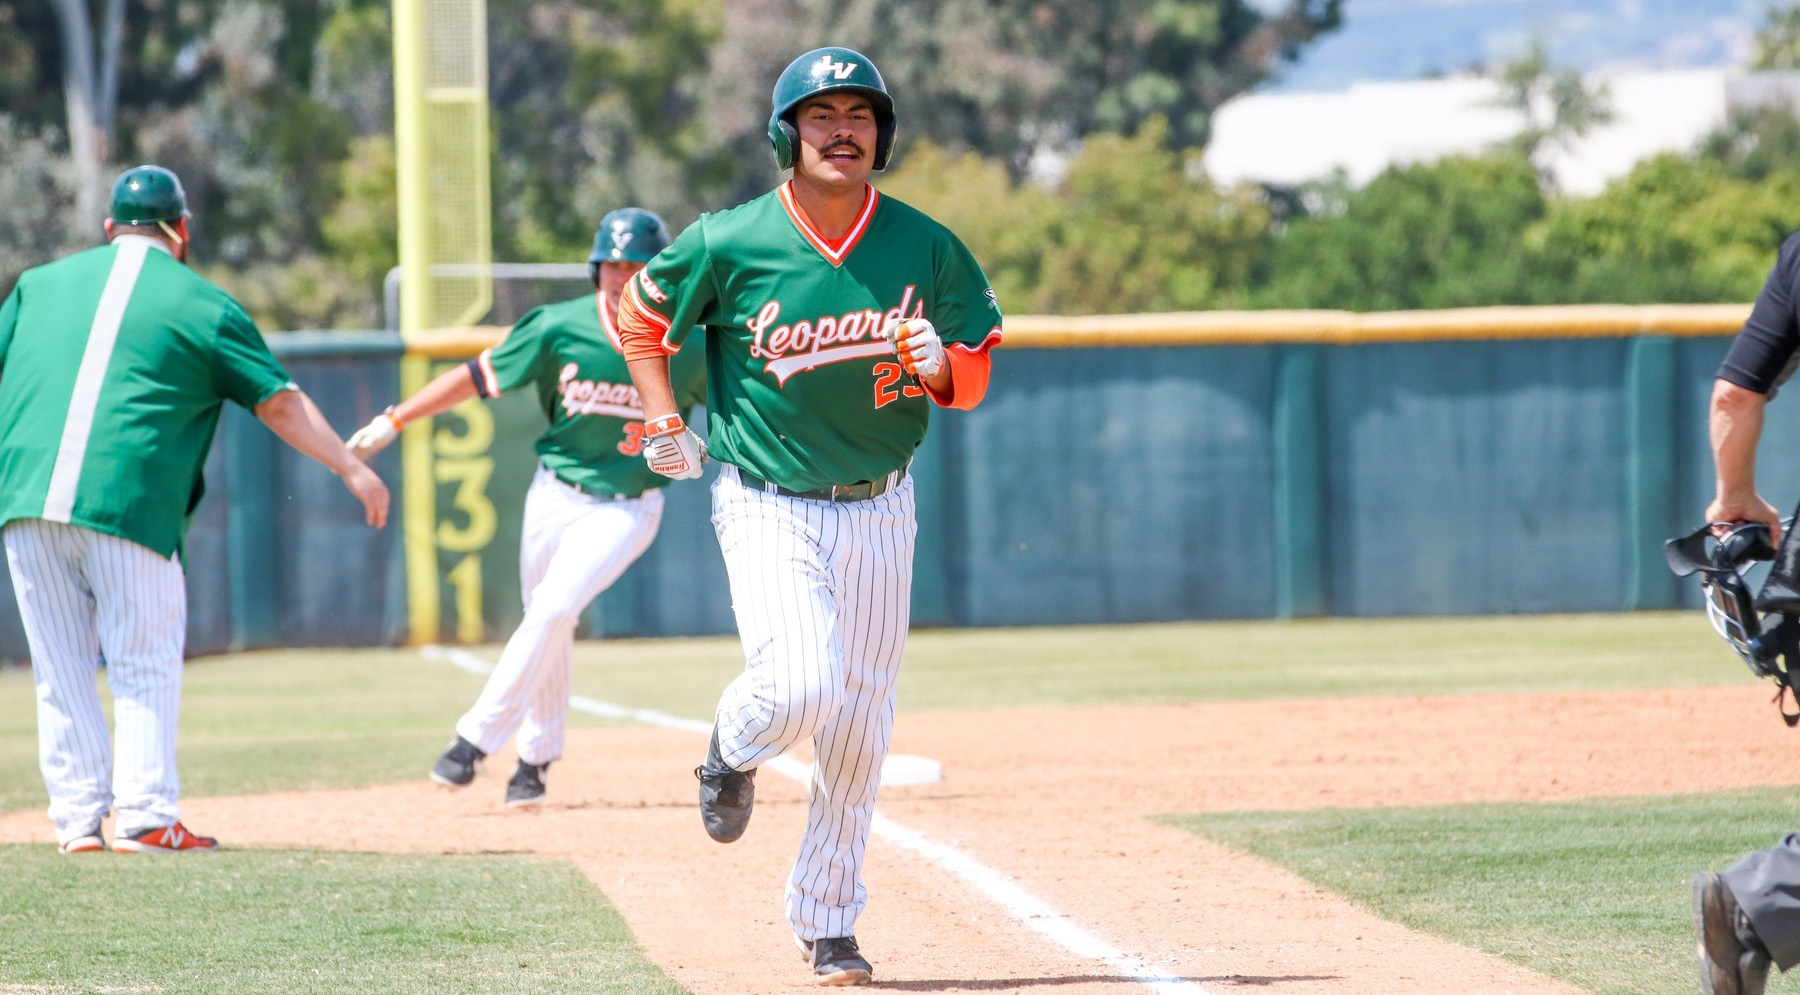 Santa Cruz, Baseball sweep Redlands